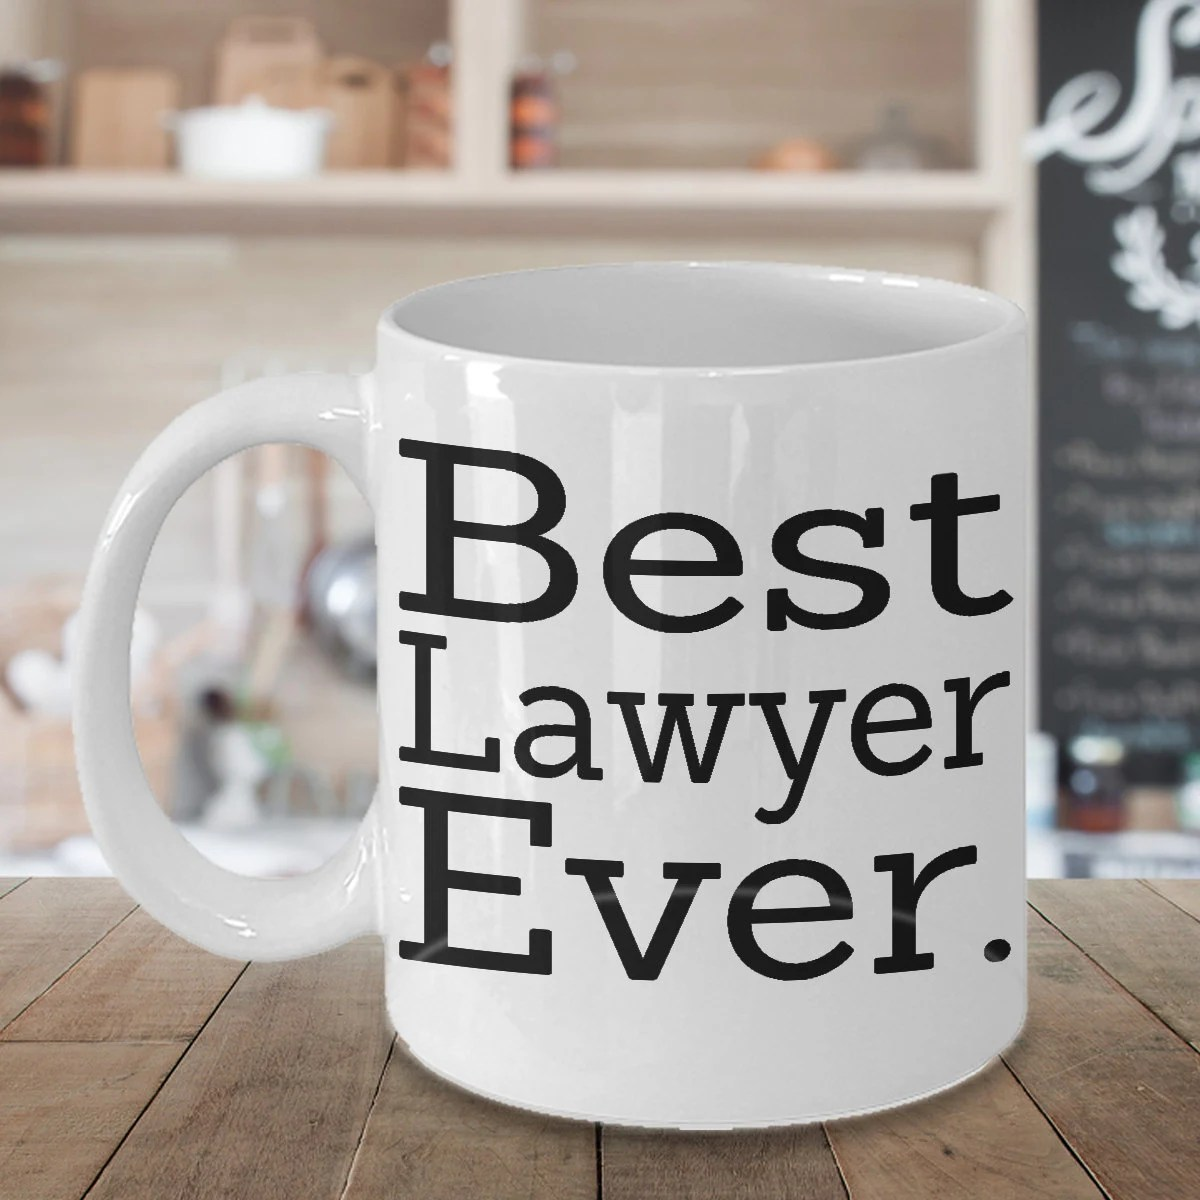 Creative Gifts Lawyer Lawyer Attorney Attorney Gifts Lawyers 2016 Gifts Lawyer Lawyer Attorney Attorney Gifts Lawyers Passing Bar gifts Gifts For Lawyers